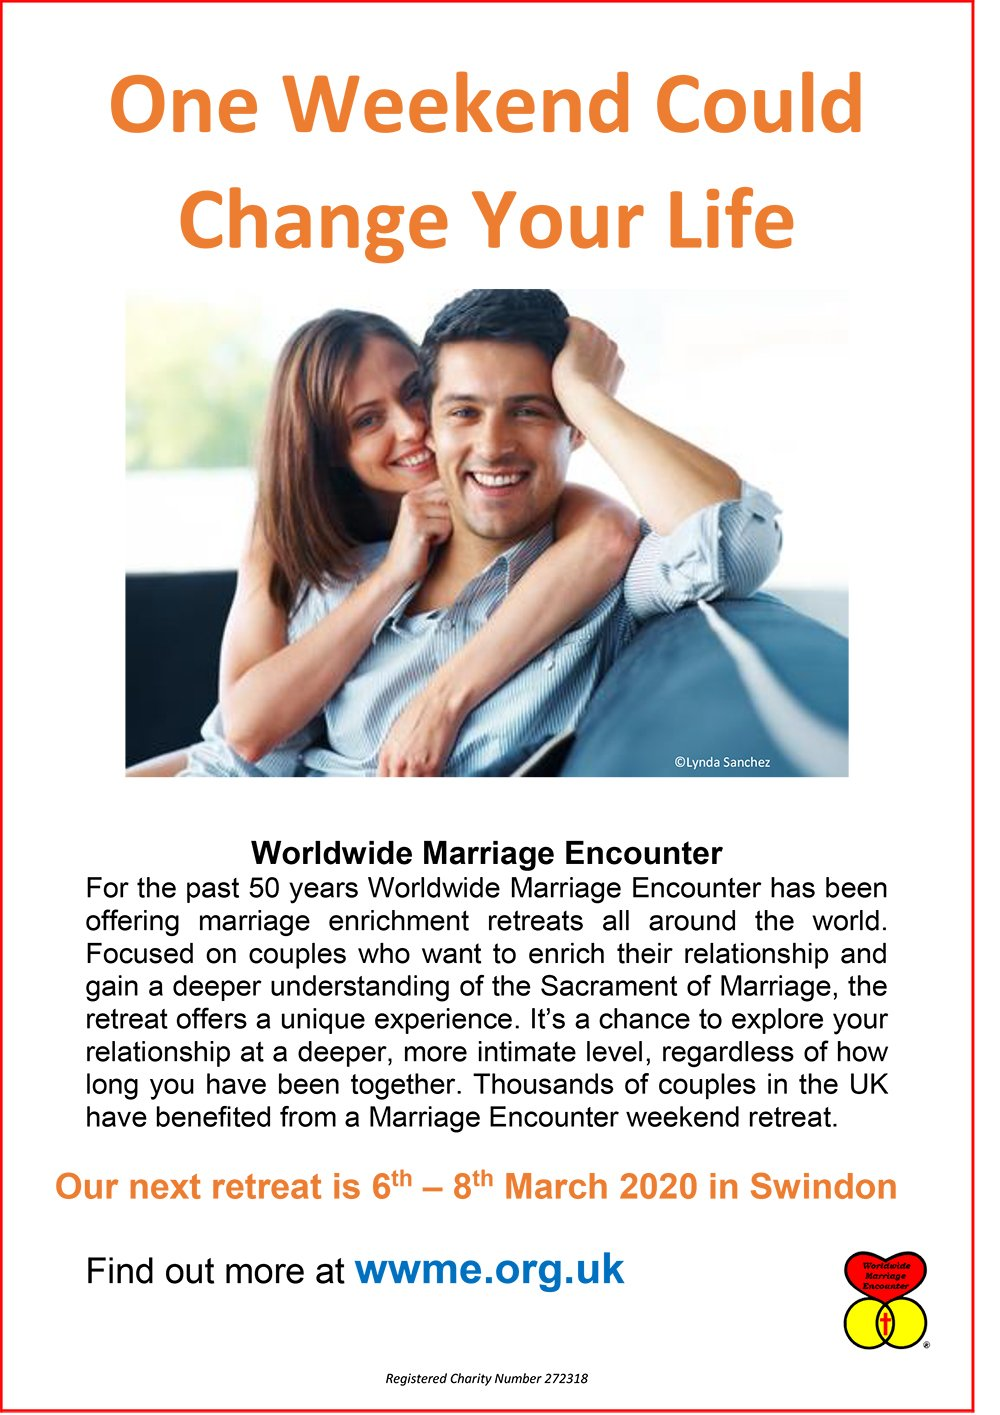 One Weekend Could Change Your Life - Worldwide Marriage Encounter @ Campanile Hotel | England | United Kingdom